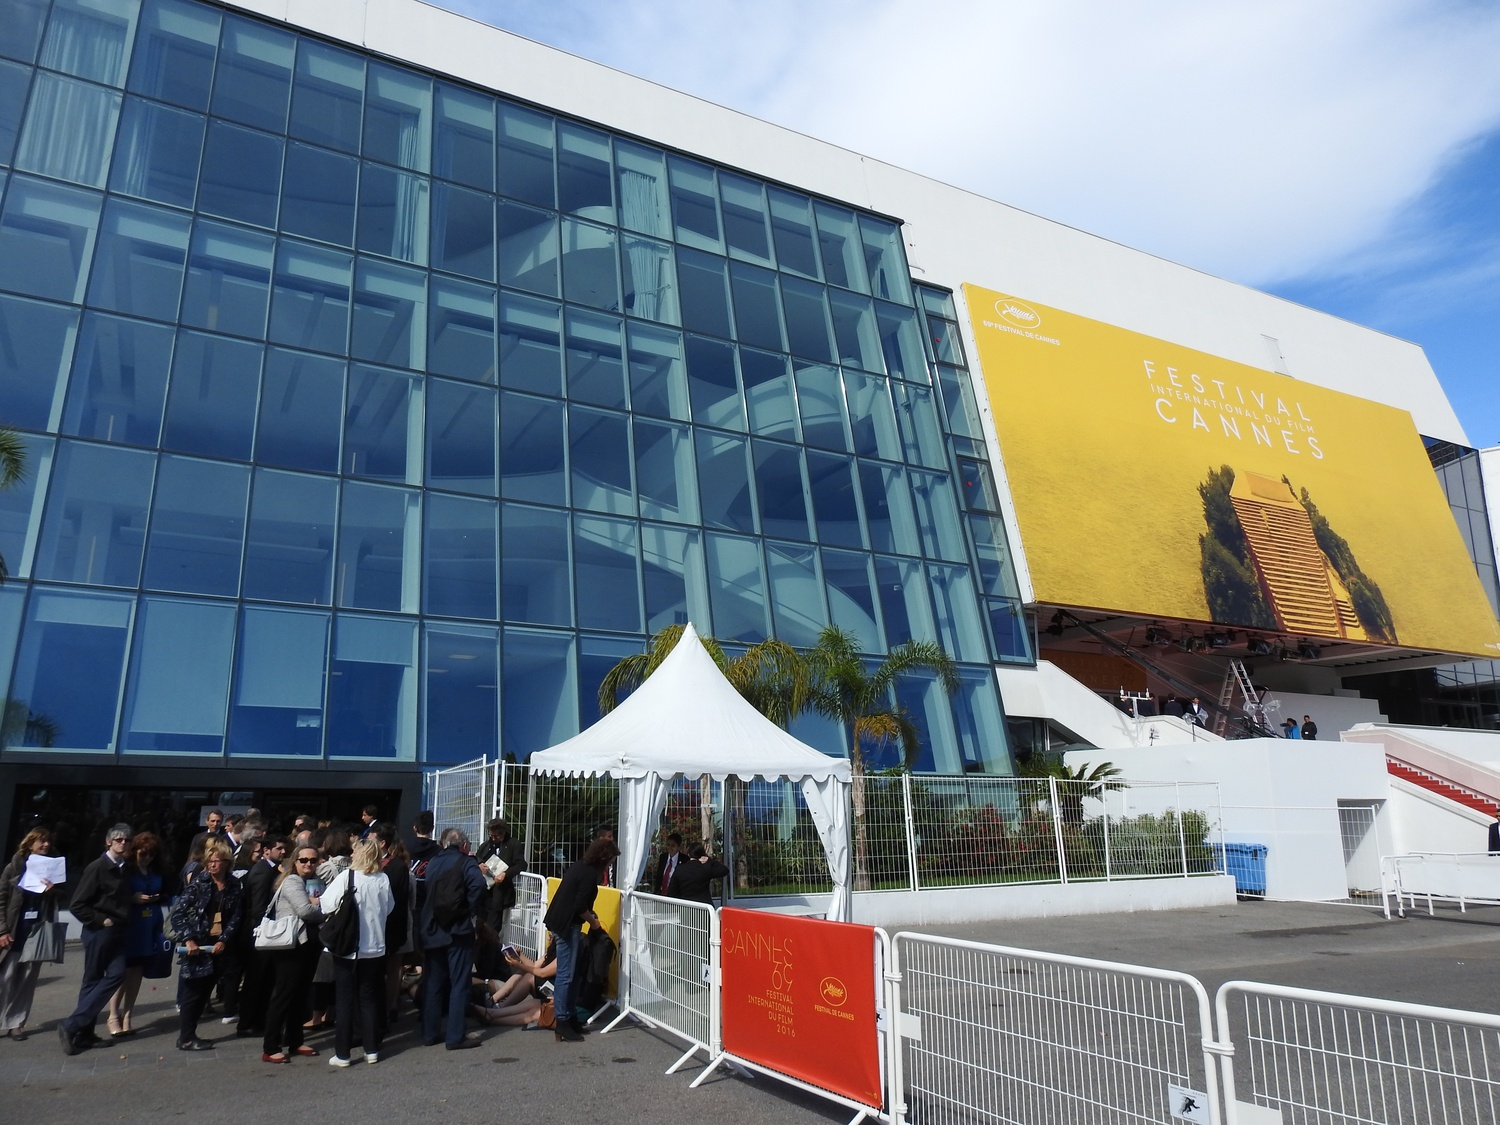 Cannes 2016 Roundup Day 1